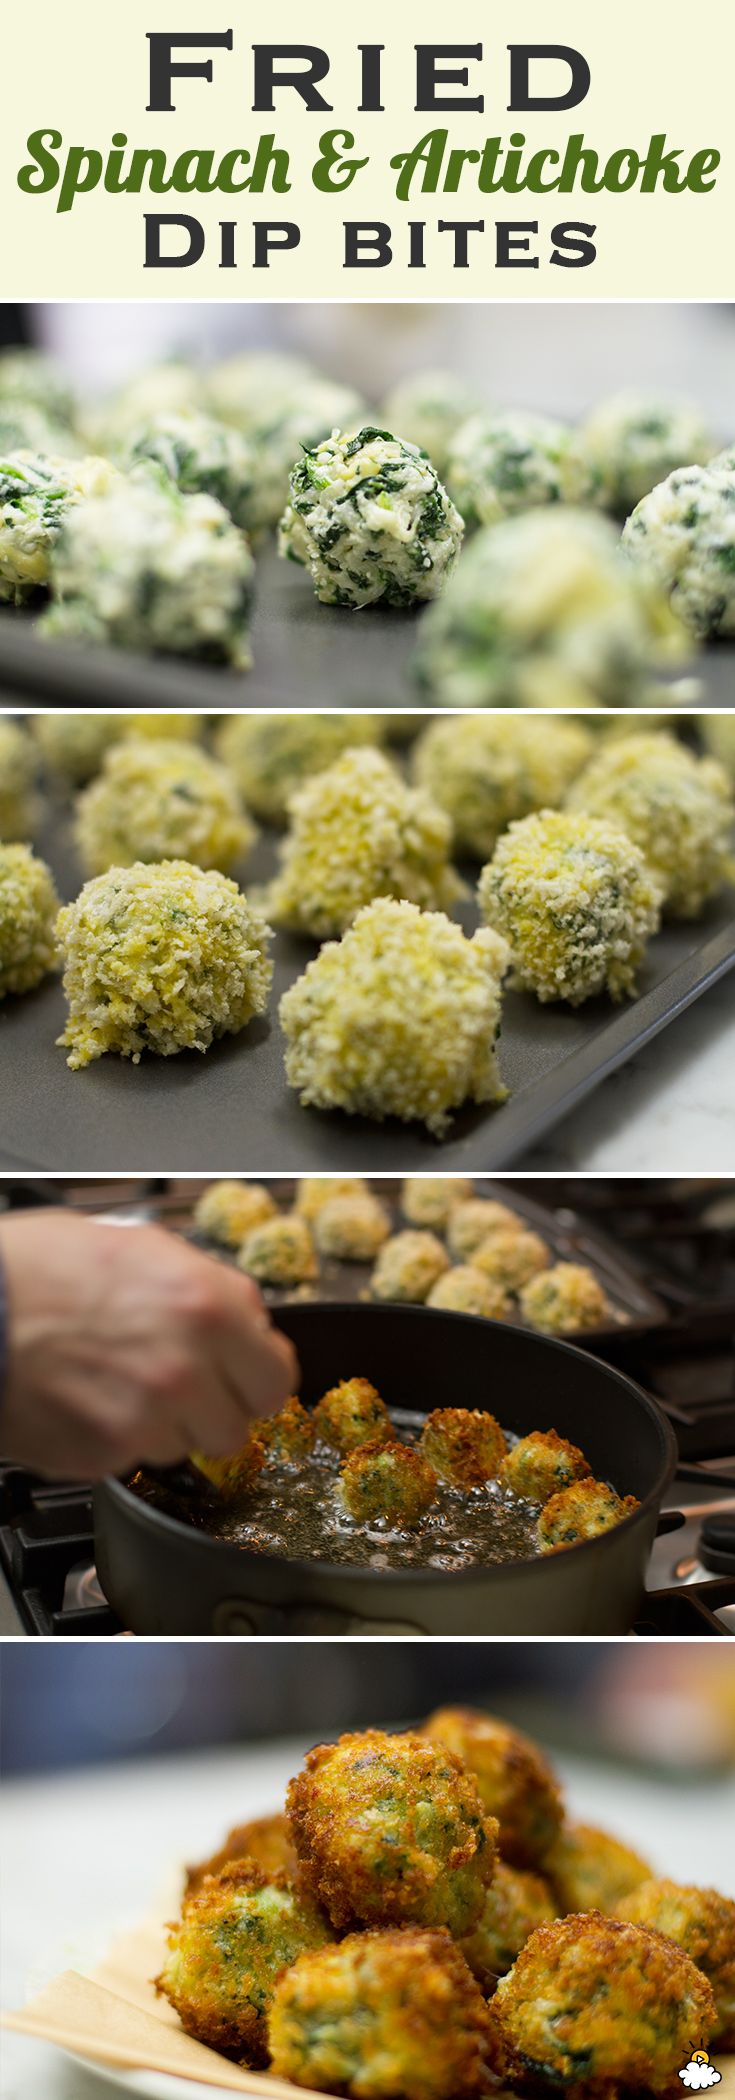 Fried Spinach And Artichoke Dip Bites Put A Perfect Twist On An Old Favorite. Perfect snack for a Super Bowl party.